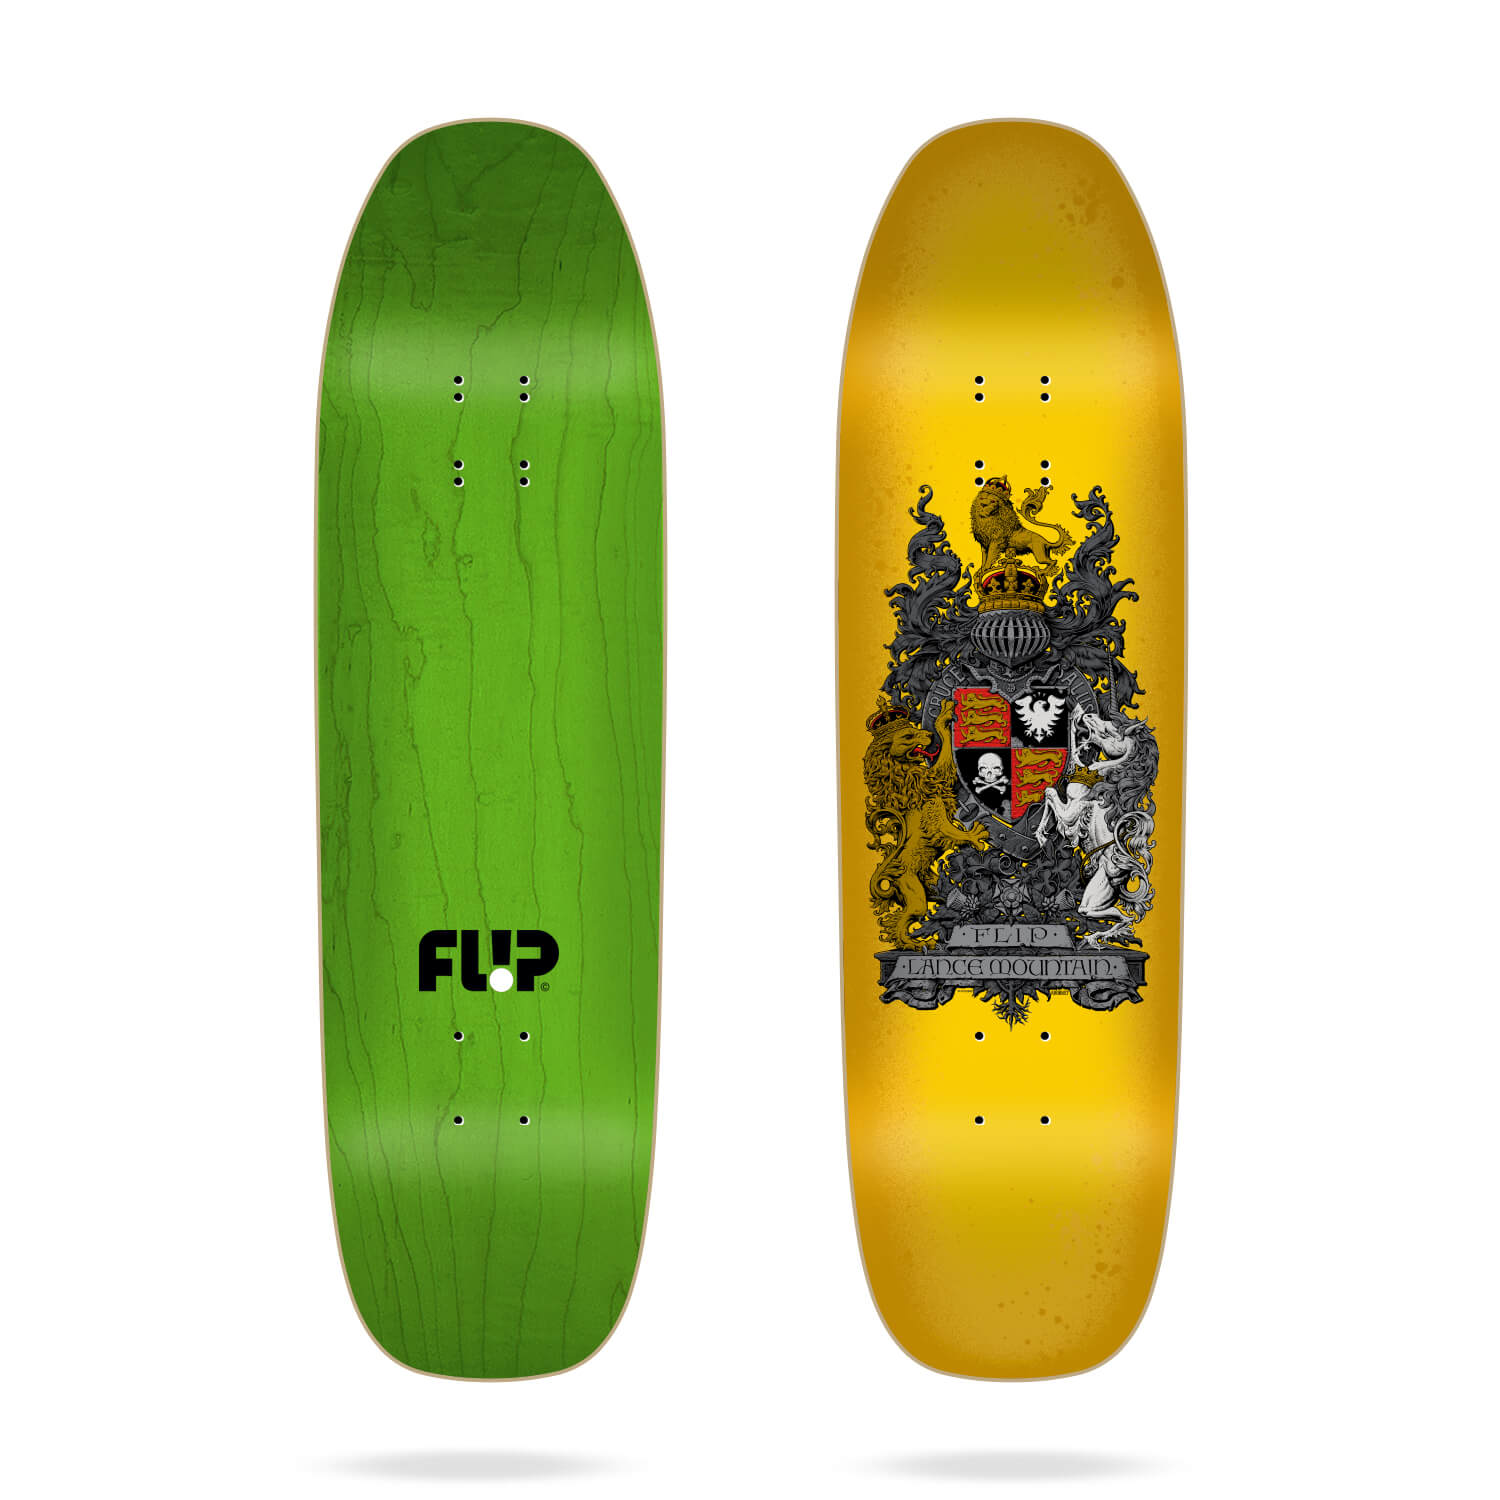 "Flip Mountain Crest Yellow 9.0"" skateboard deck"